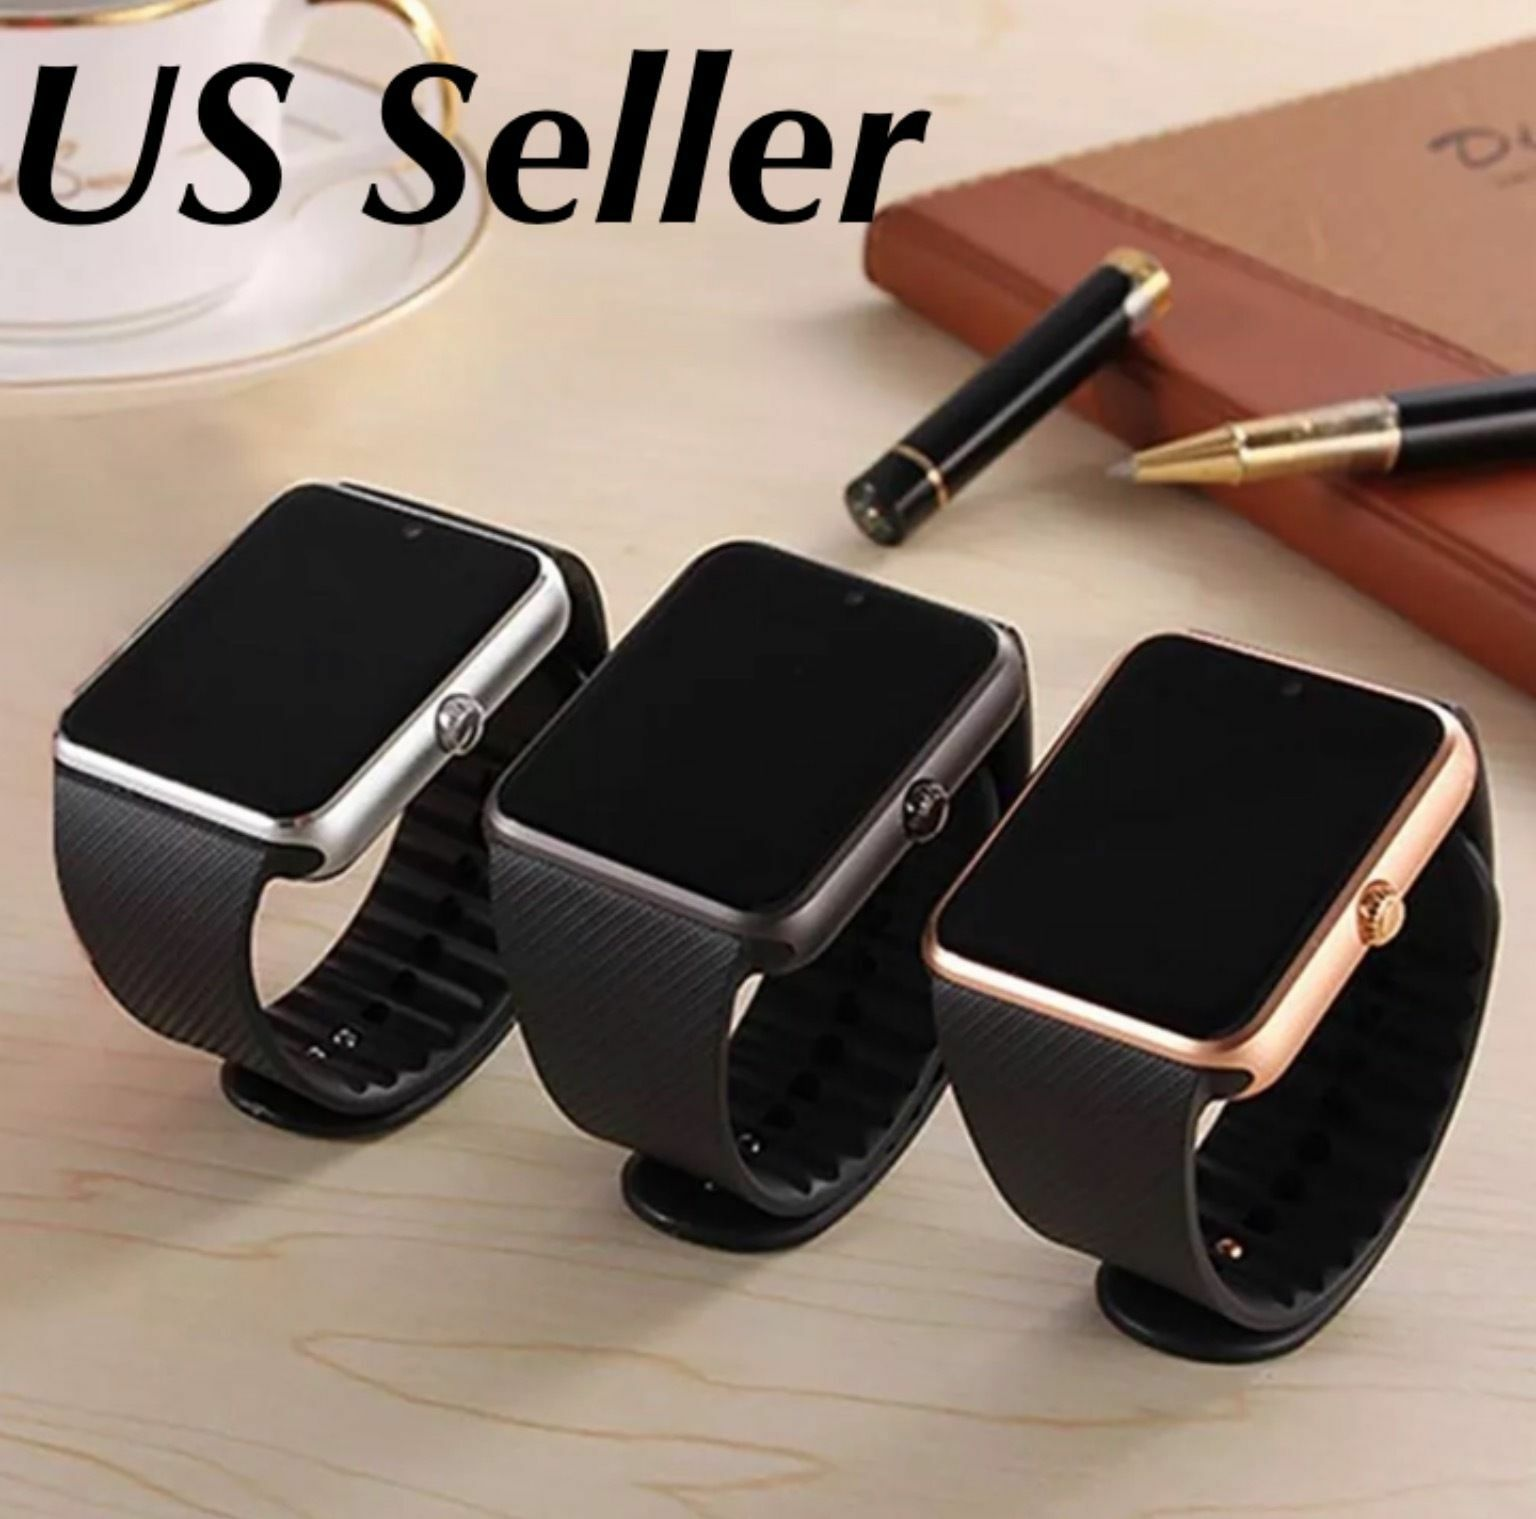 $10.99 - Smart Watch Bluetooth For Samsung iPhone HTC LG Android Ios Wrist Phone New